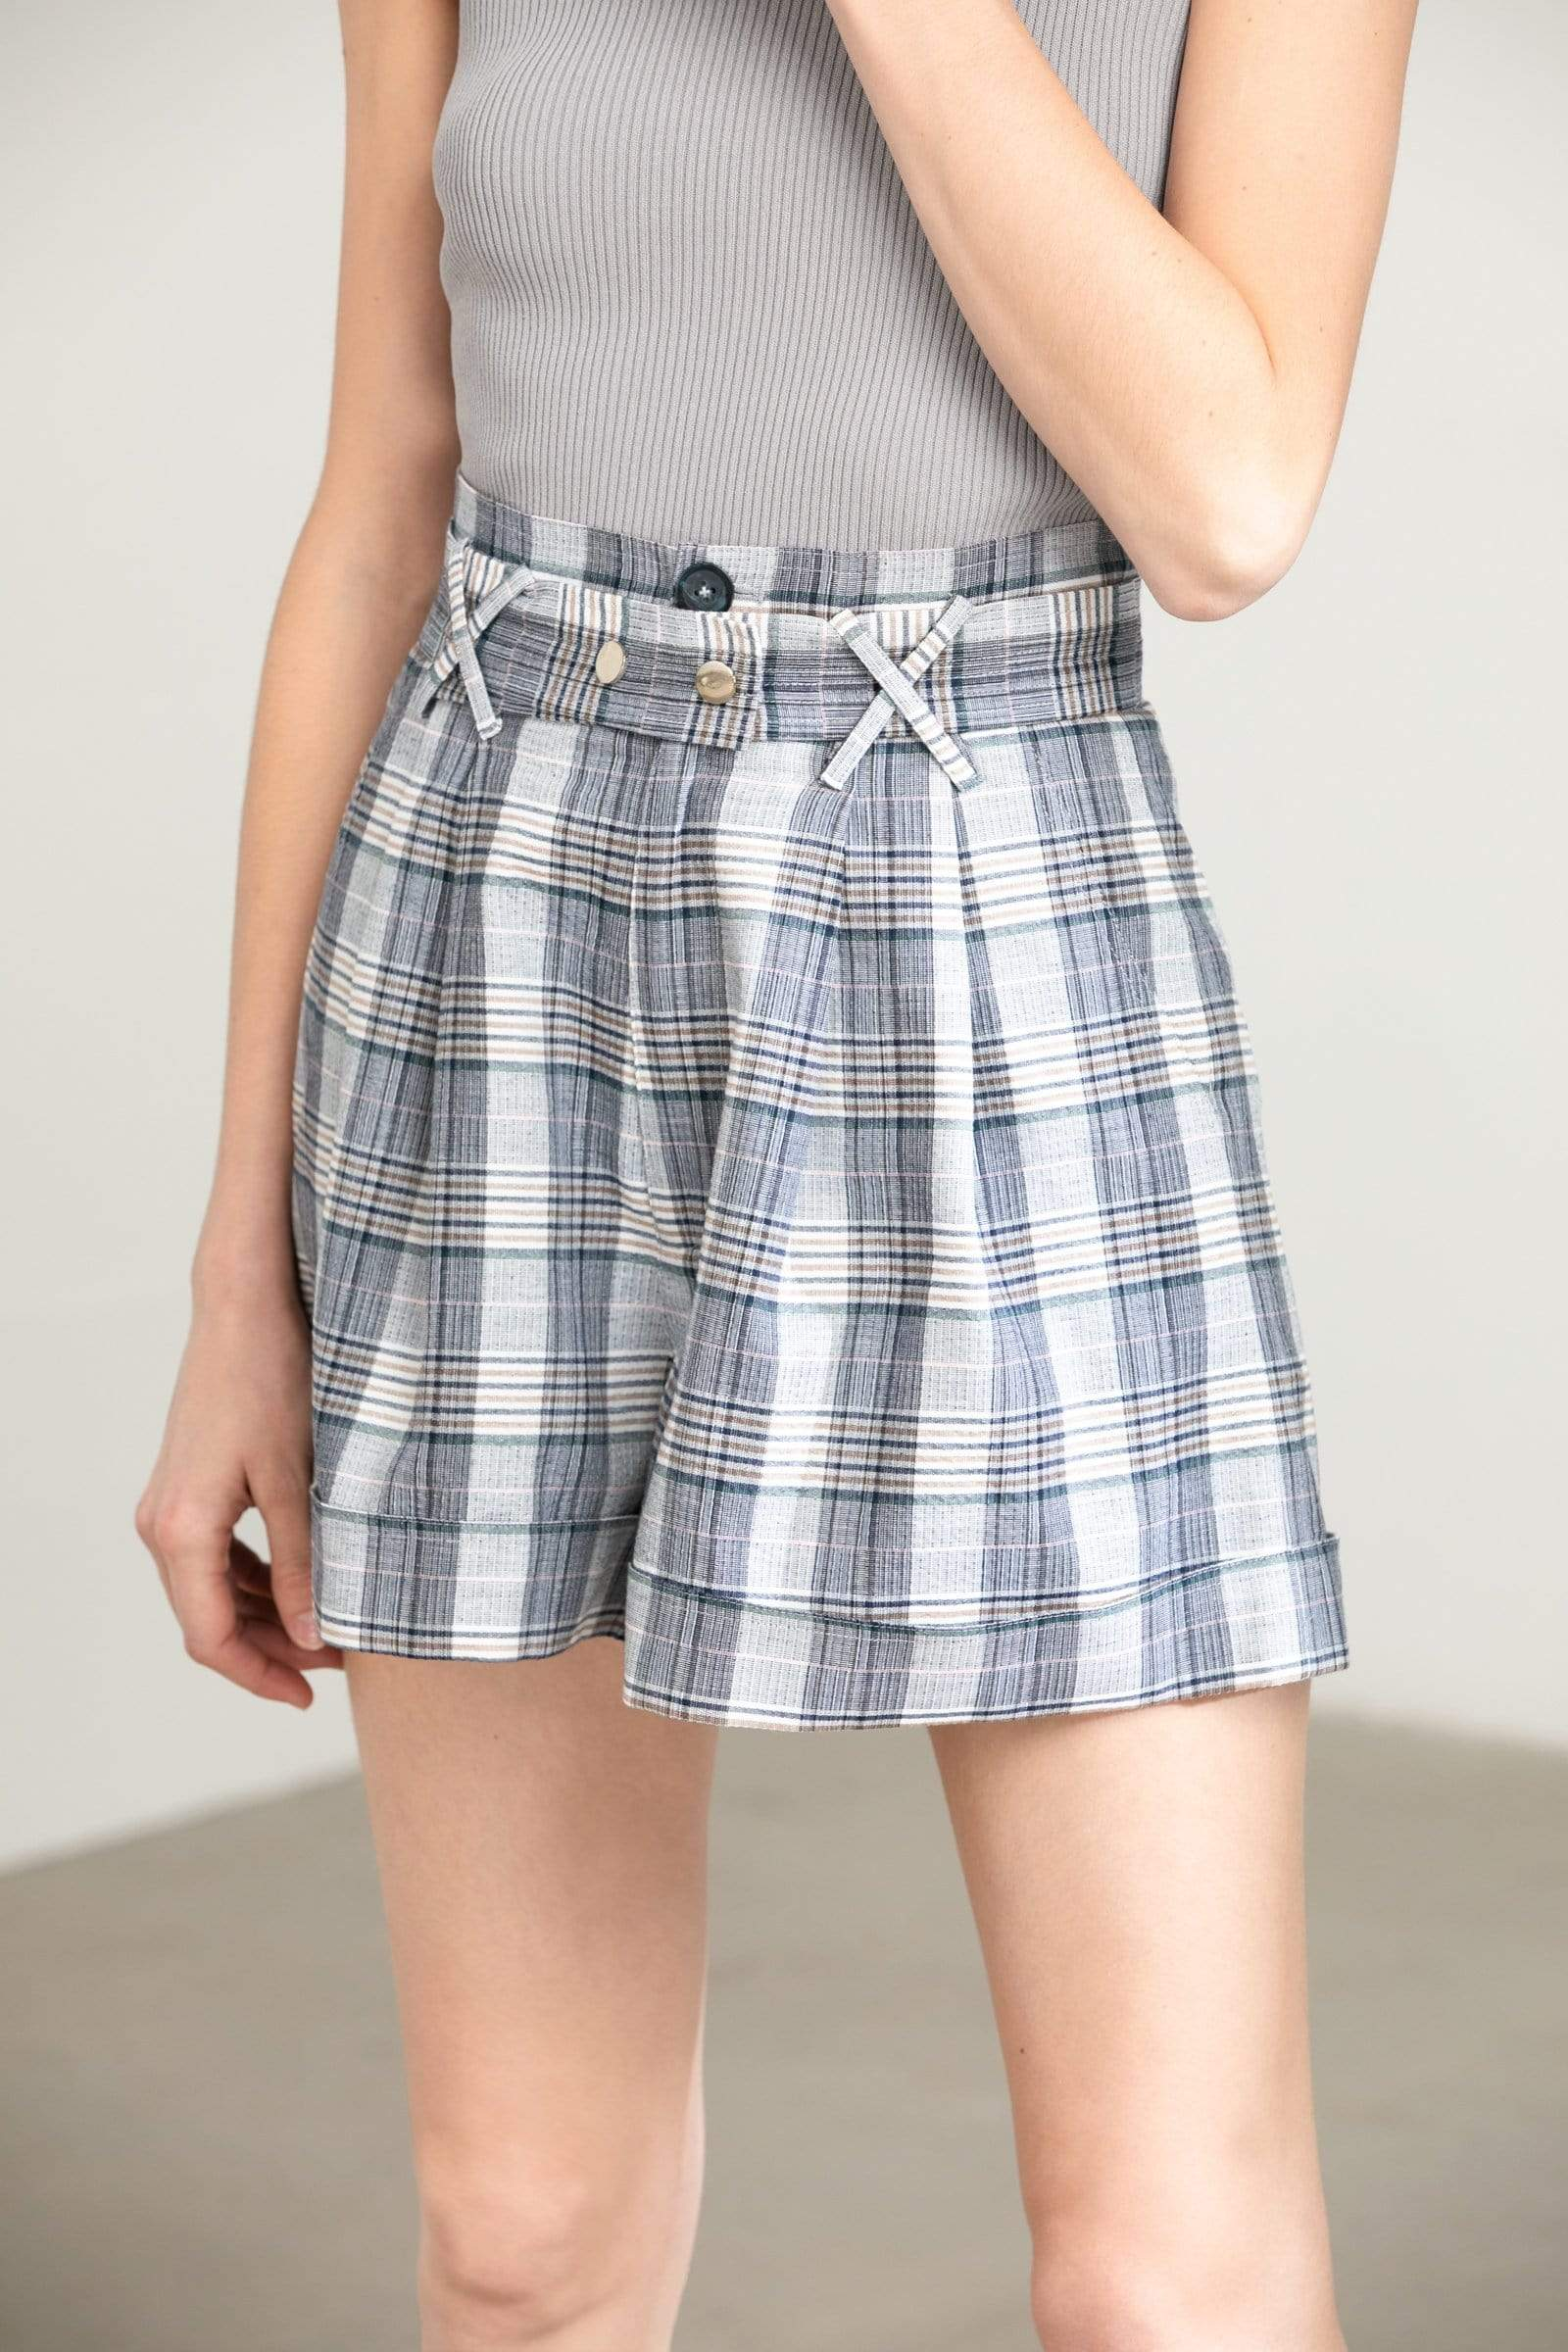 Ally Grey Checkered Shorts